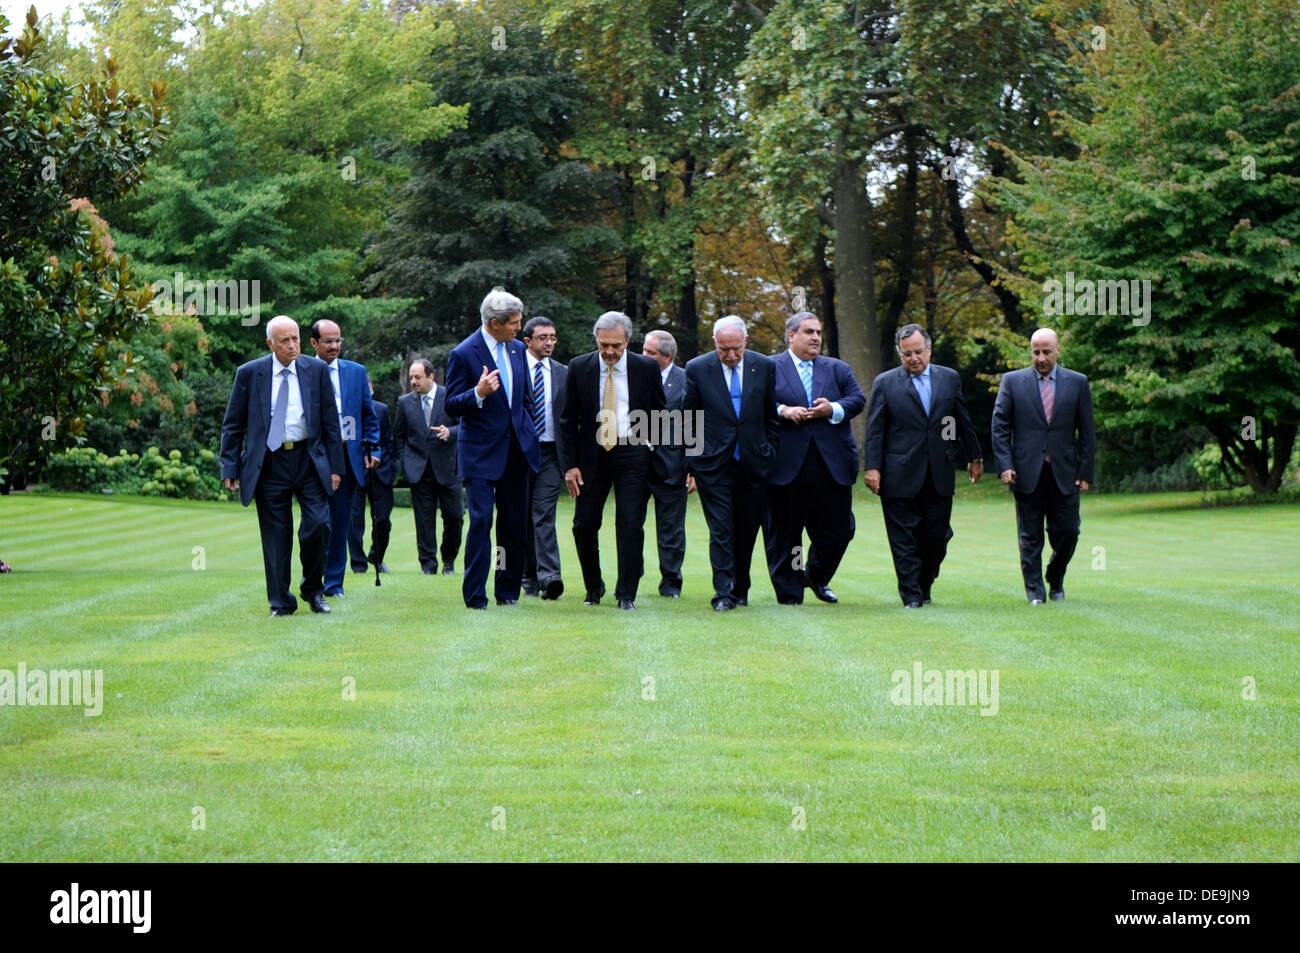 Secretary Kerry Walks With the Ministerial Delegation of the Arab Peace Initiative - Stock Image